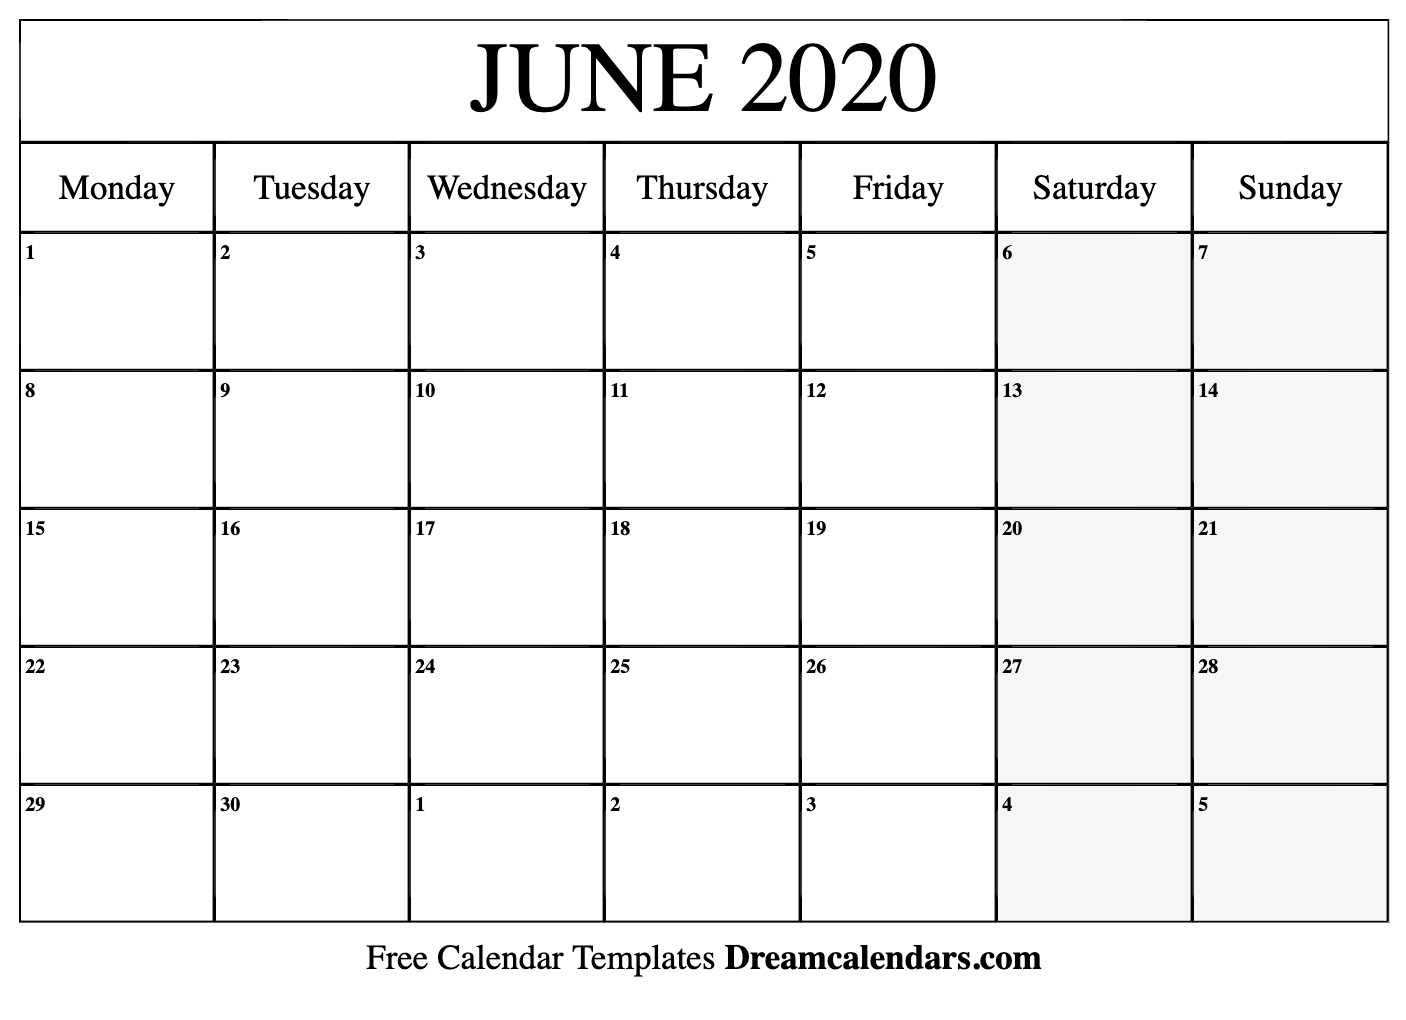 Printable June 2020 Calendar with regard to Special Days In June 2020